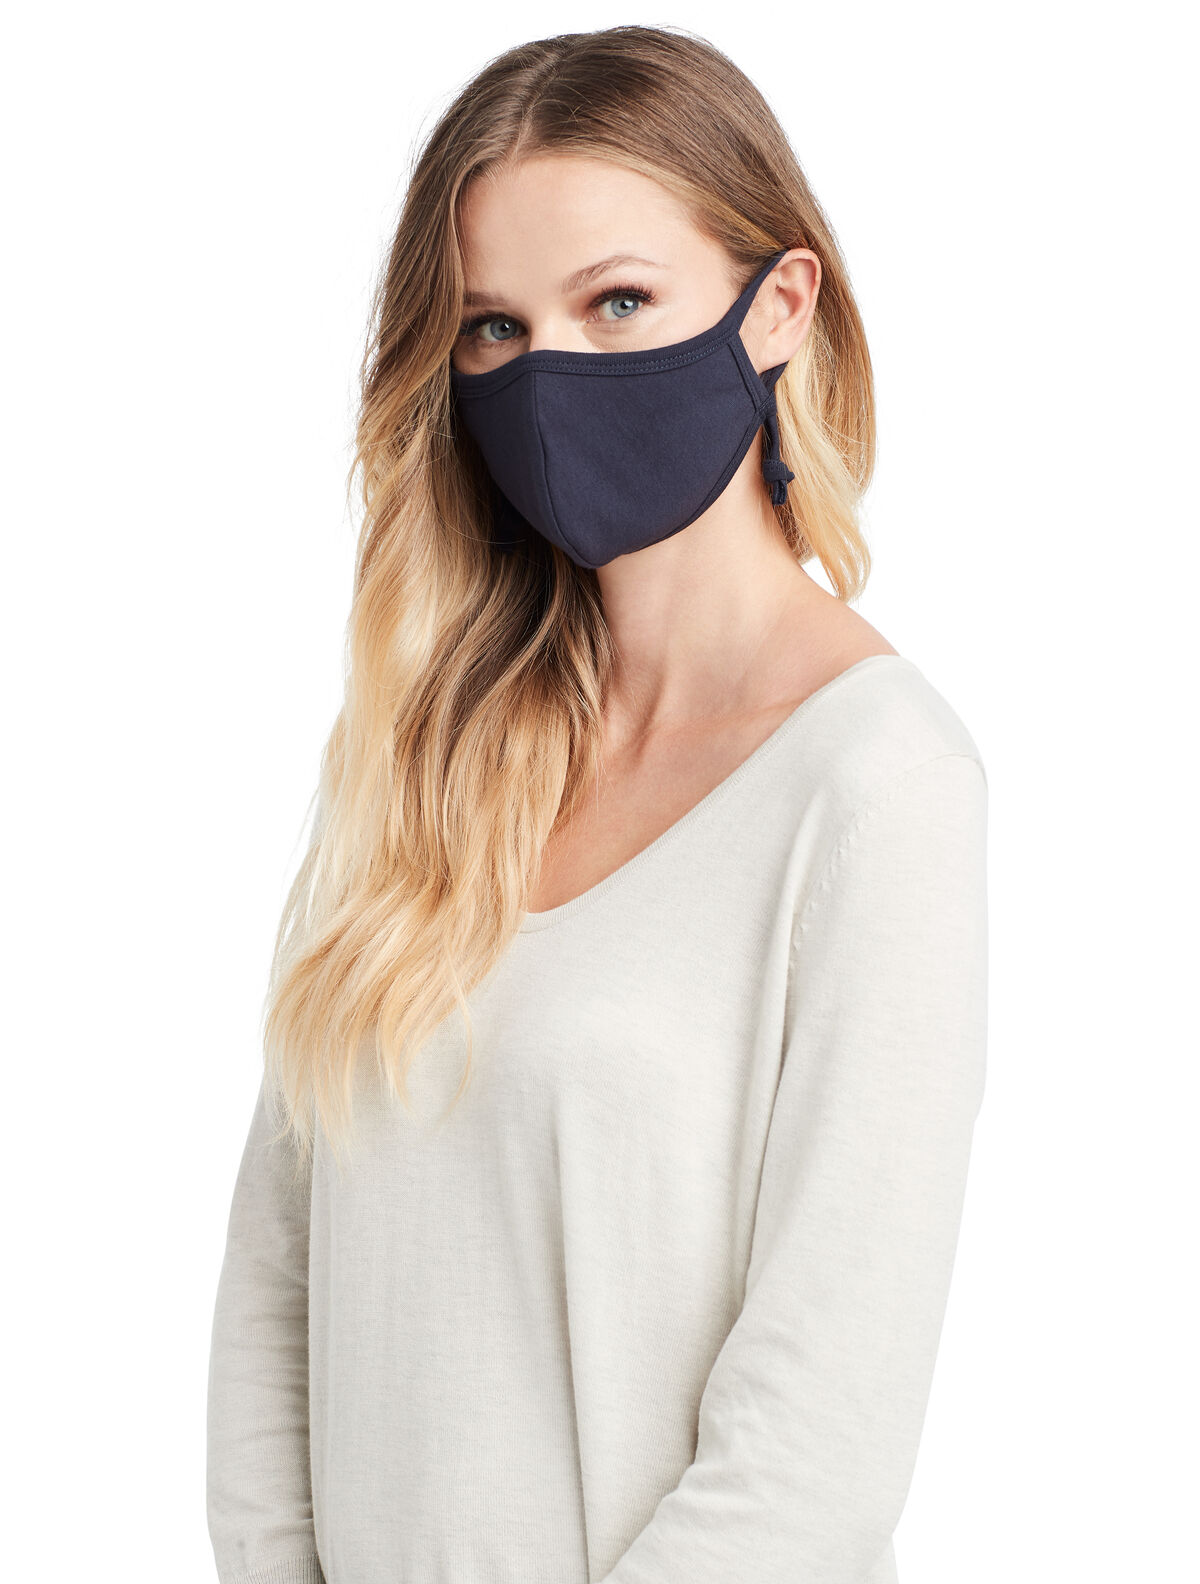 Perfect Mask 3 Pack